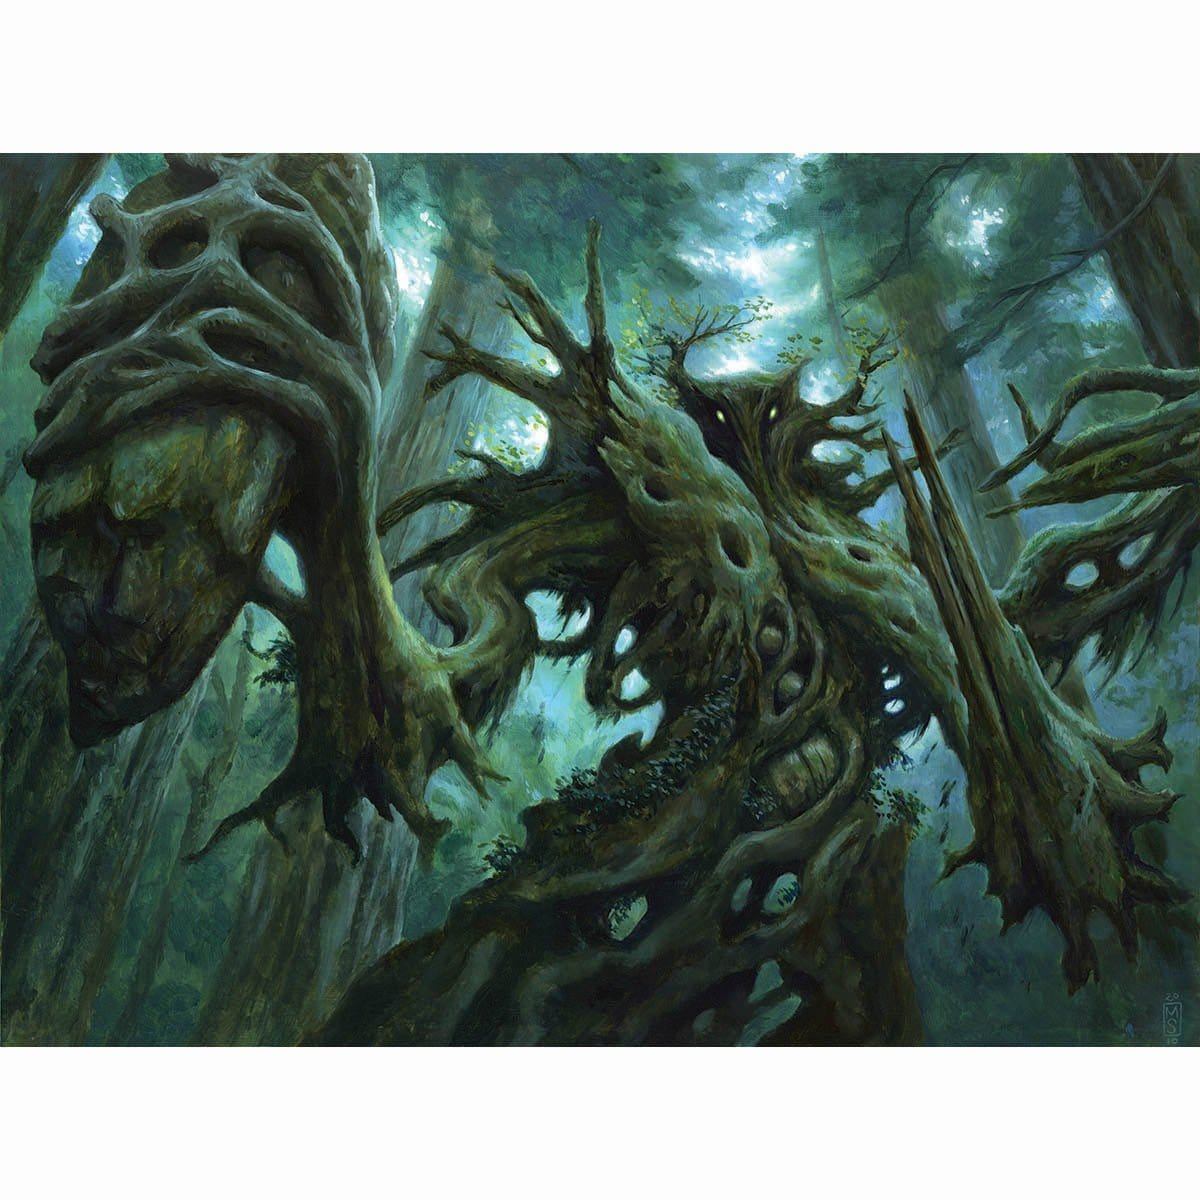 Dungrove Elder Print - Print - Original Magic Art - Accessories for Magic the Gathering and other card games